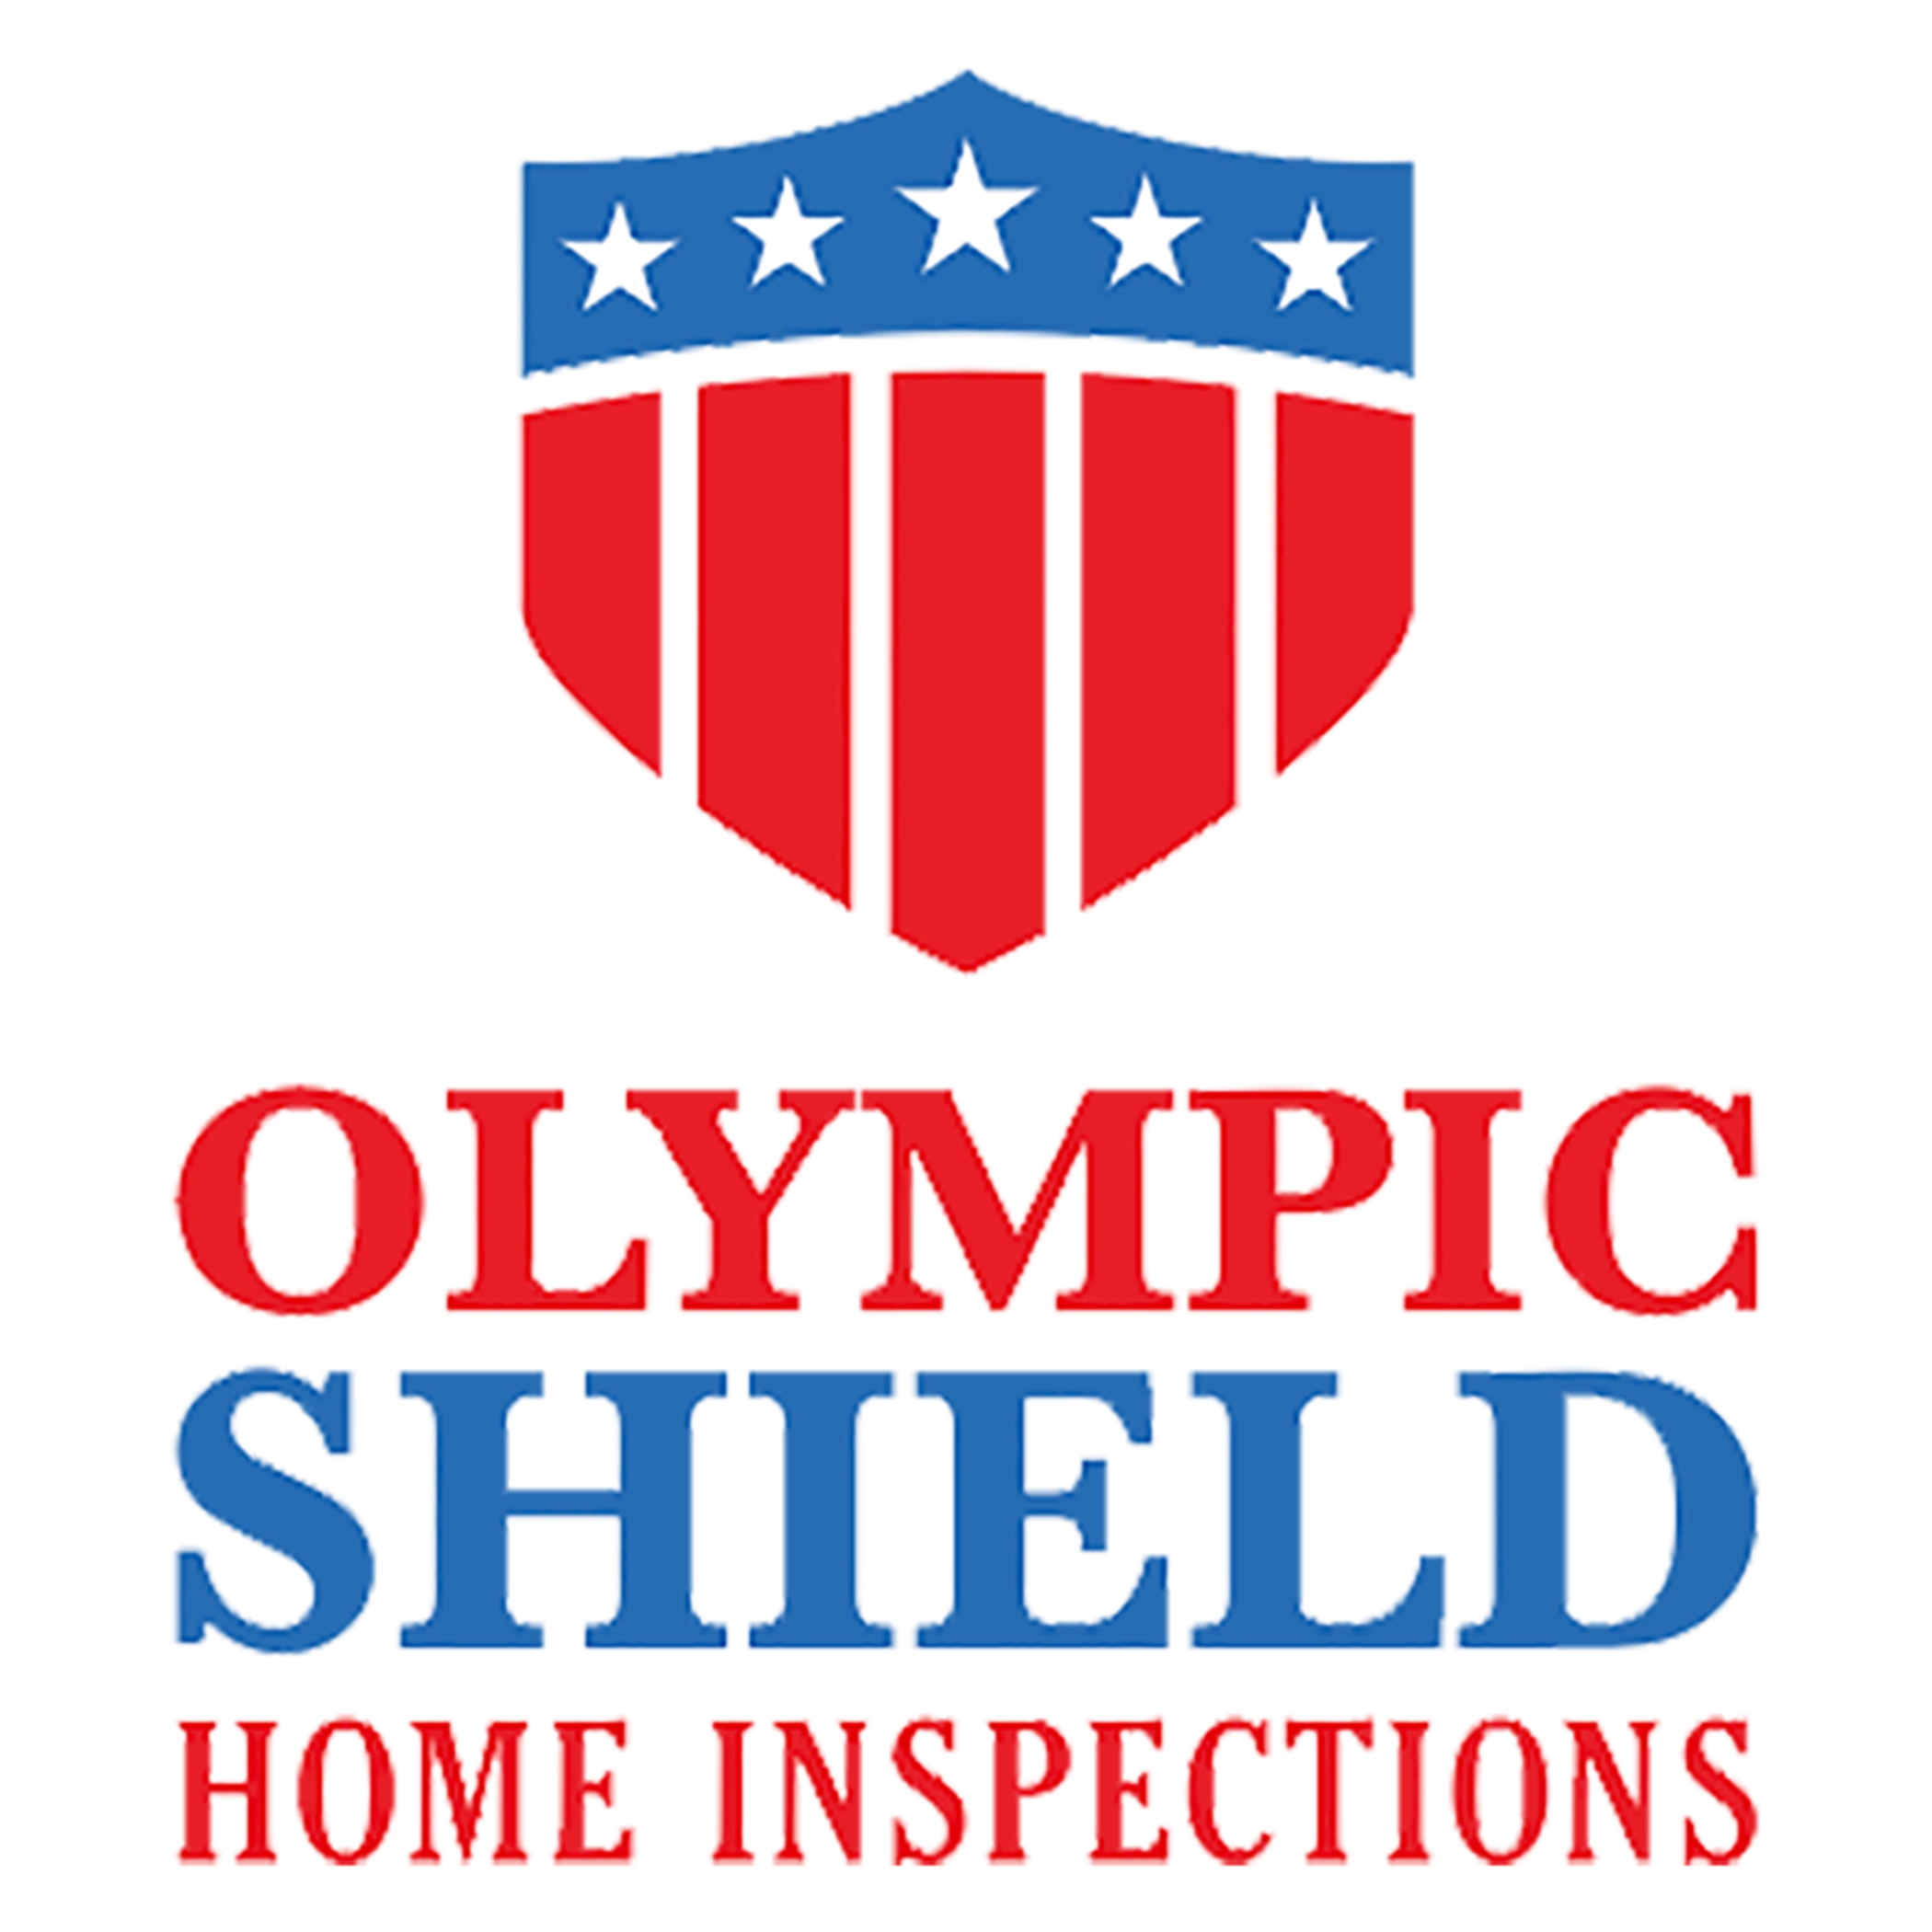 Olympic Shield LLC